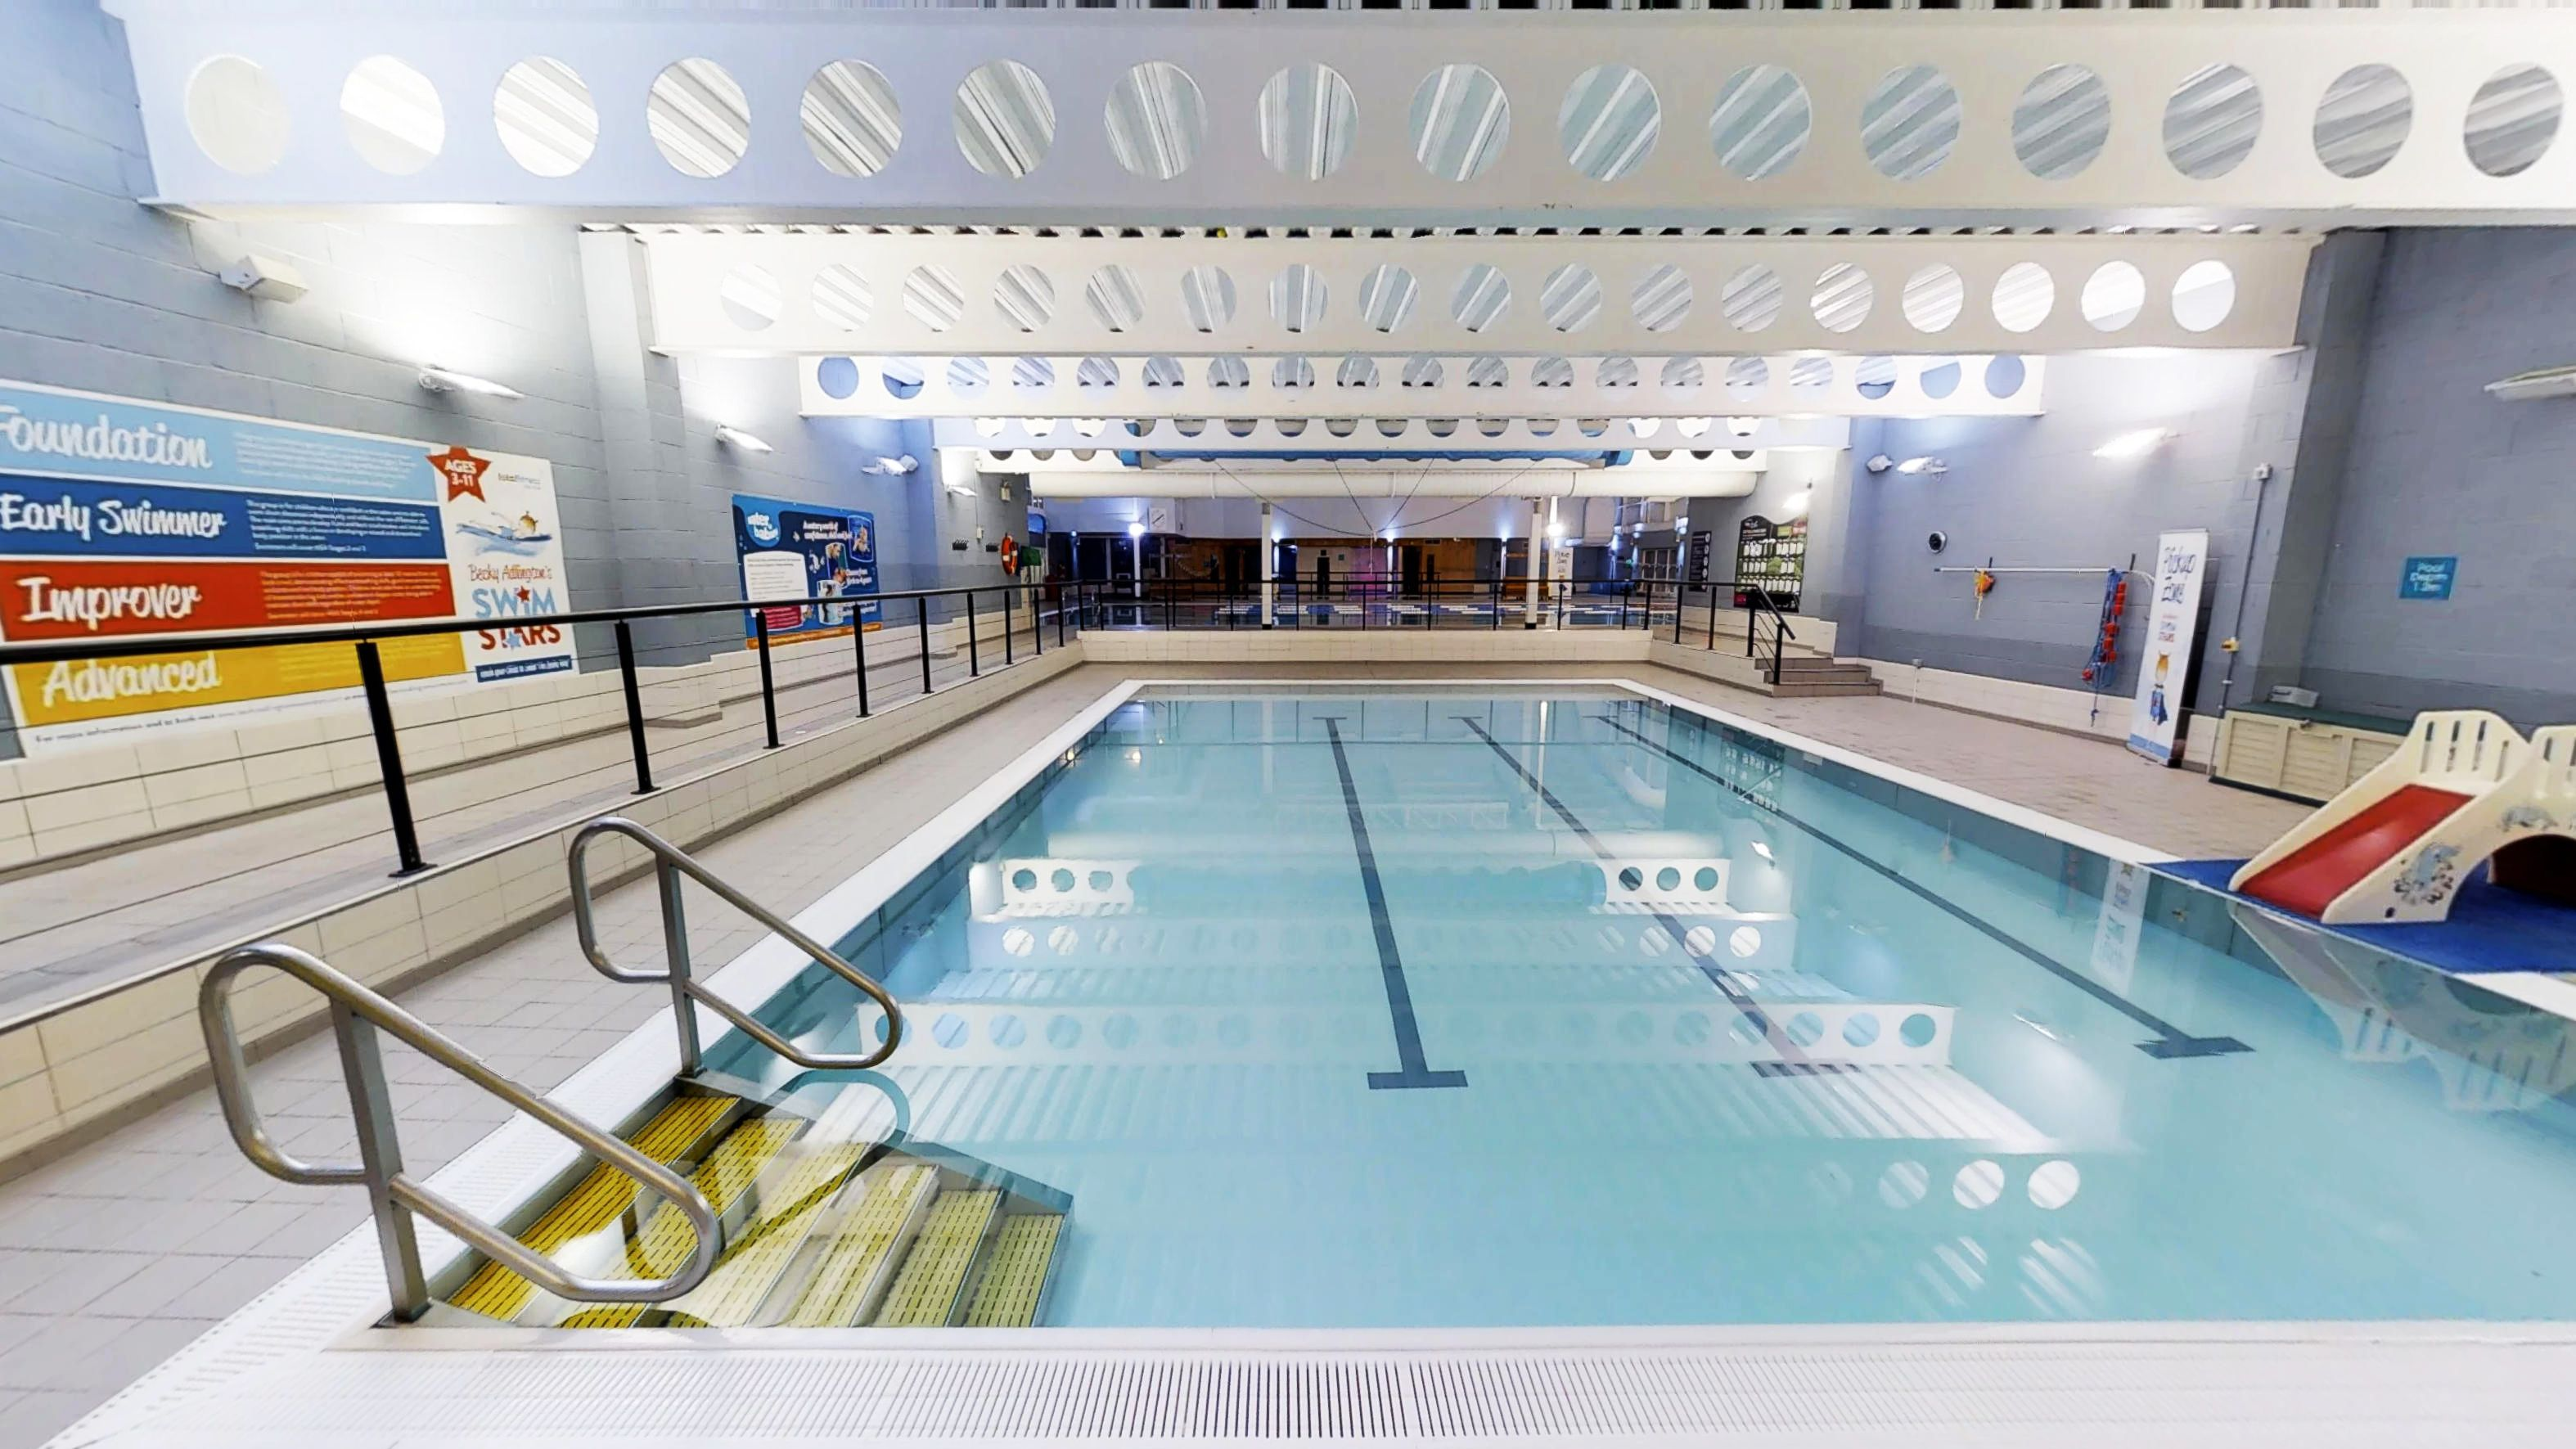 c5199d78a62 Total Fitness Whitefield - small pool